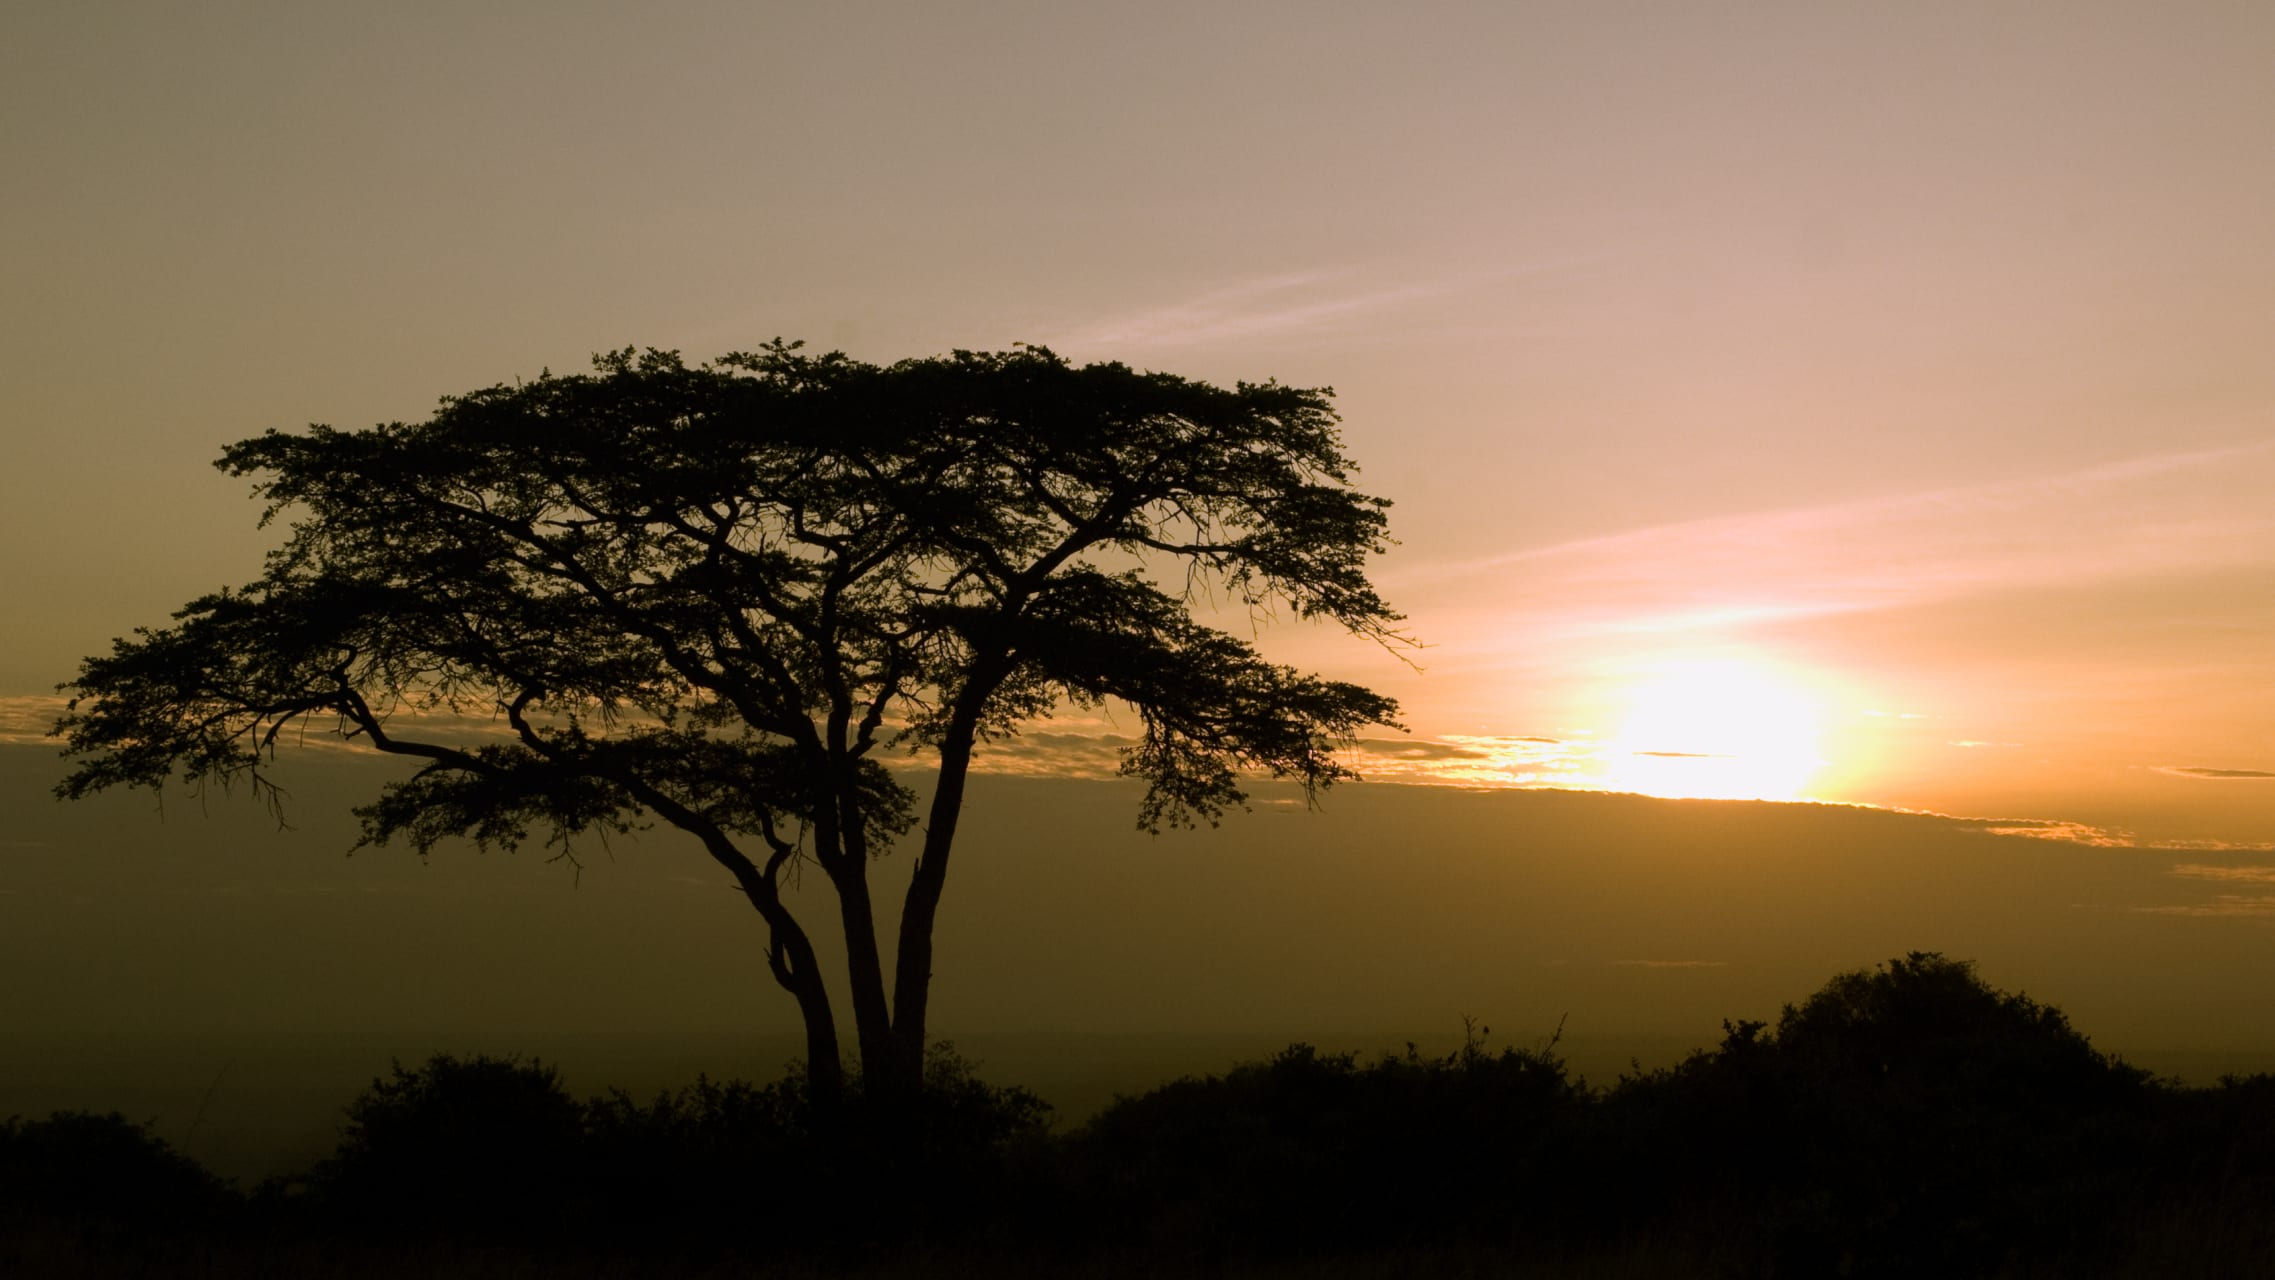 Nairobi - Sunrise on the Savannah: Waking up with Nairobi National Park when the animals come out to play